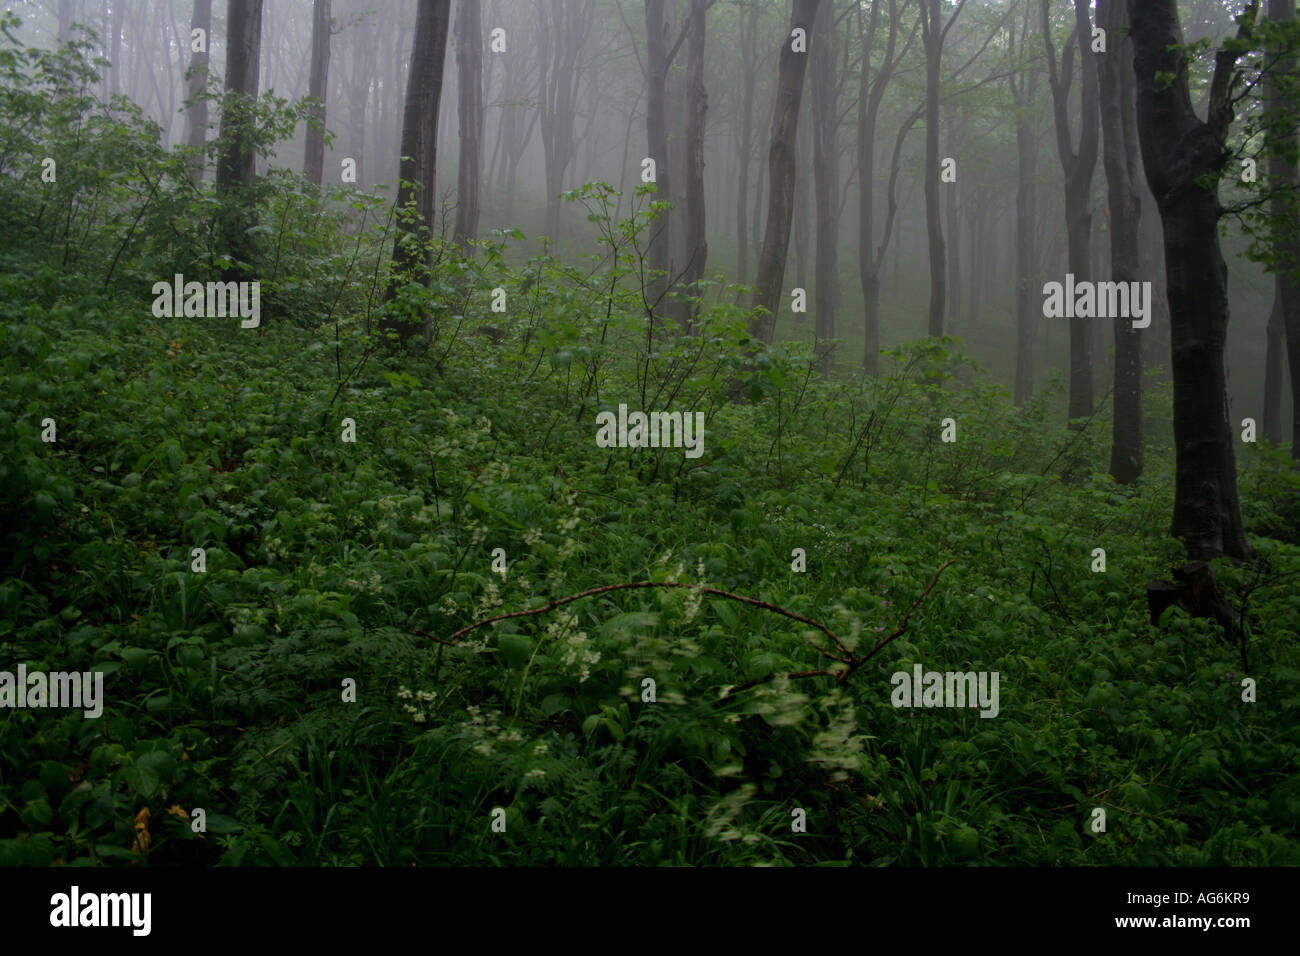 forest - Stock Image